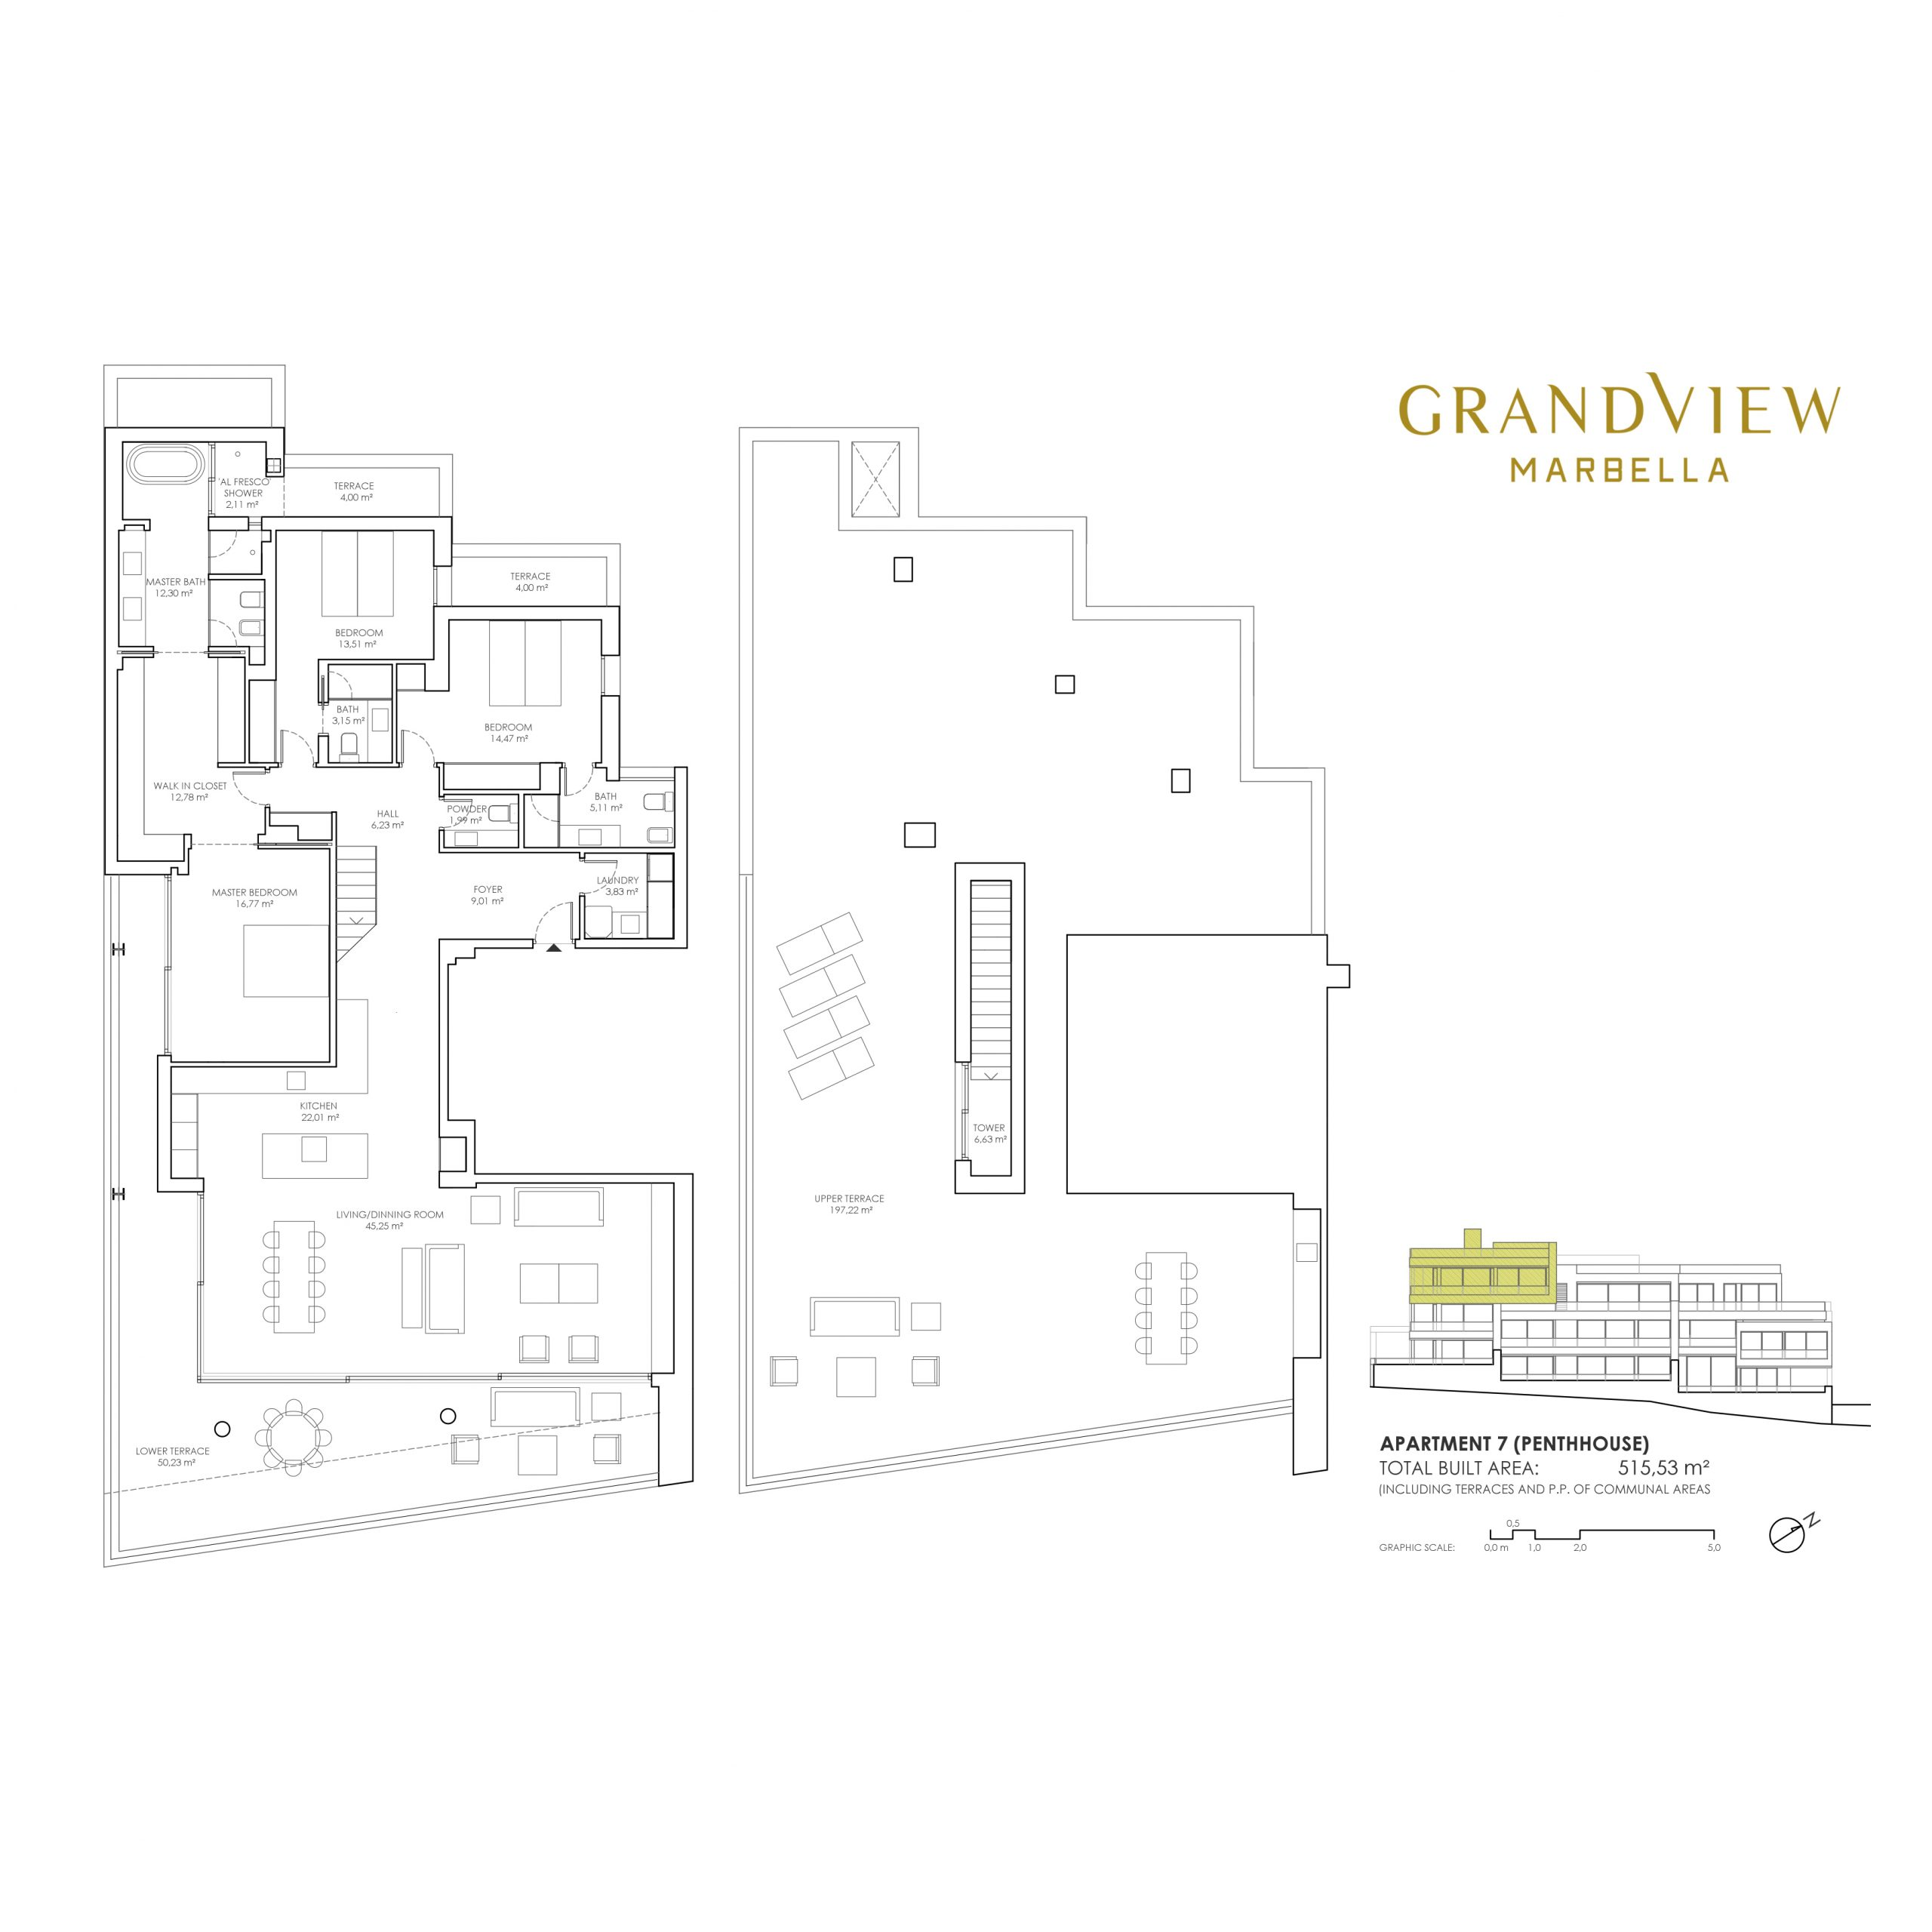 Grand View Marbella Apartment 7 - Penthouse